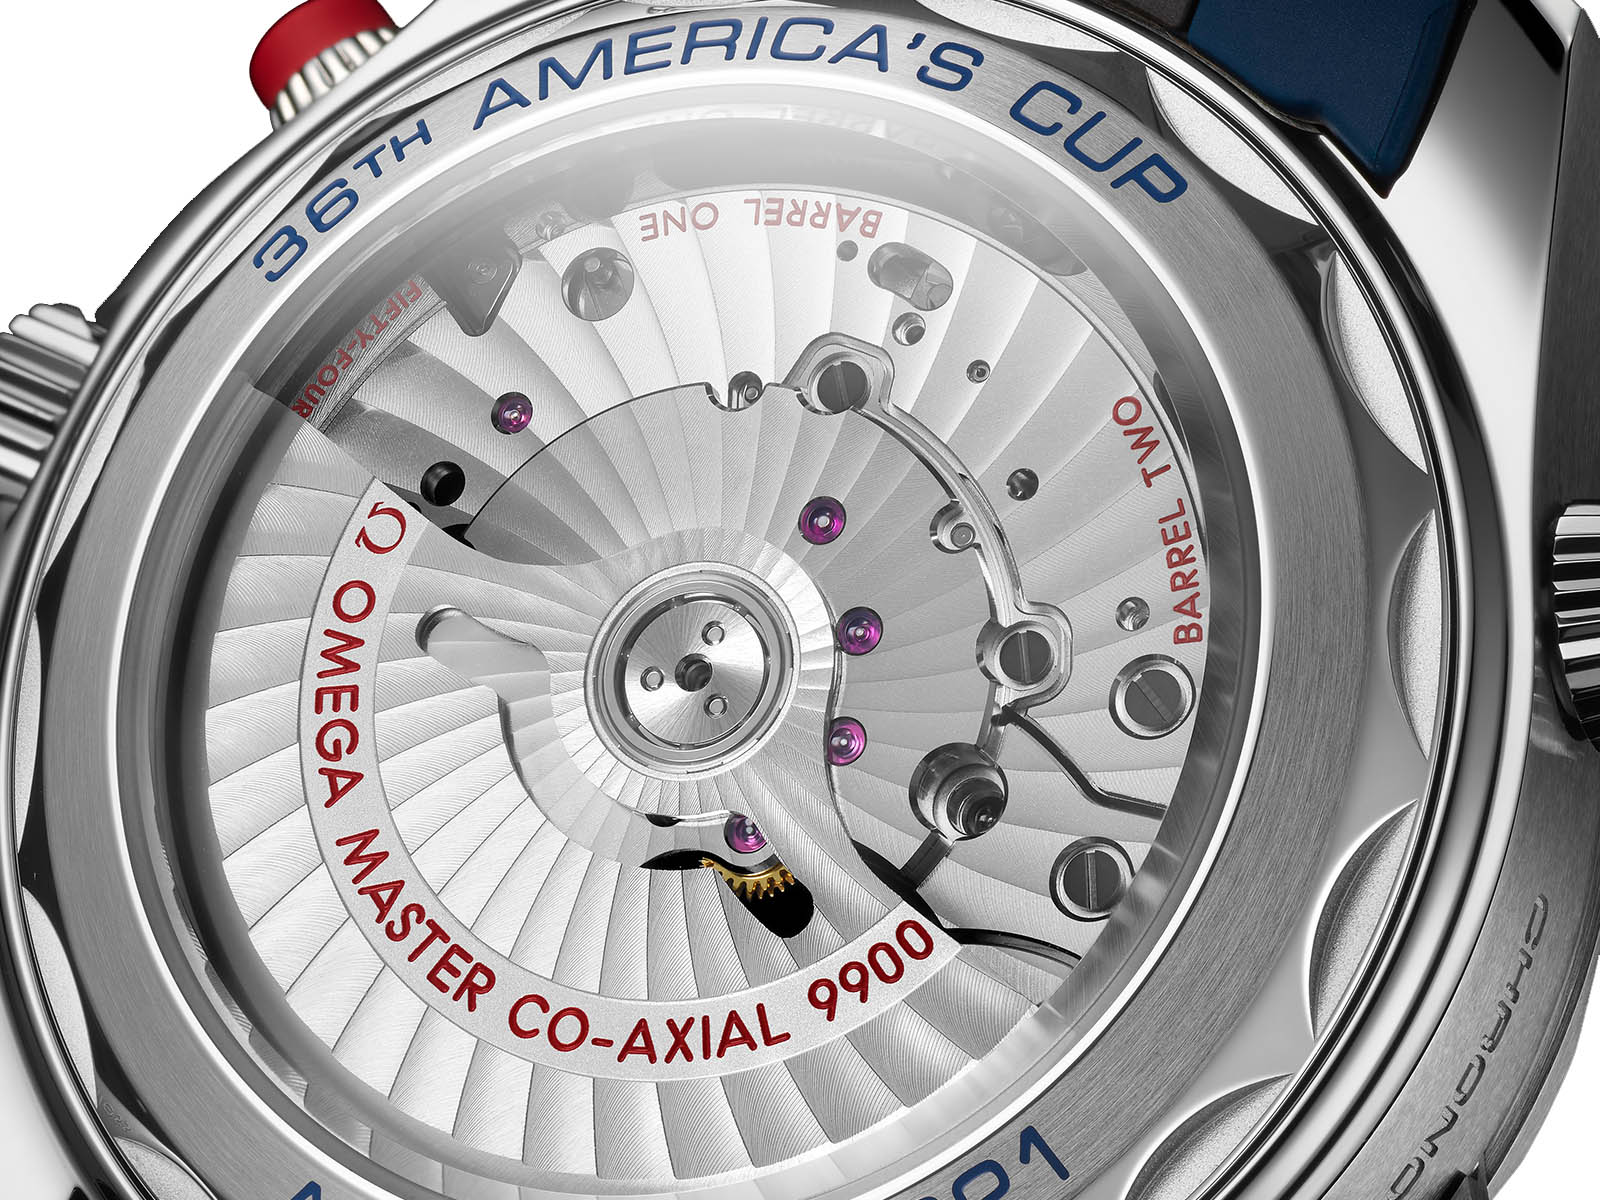 210-30-44-51-03-002-omega-seamaster-diver-300m-america-s-cup-chronograph-6.jpg